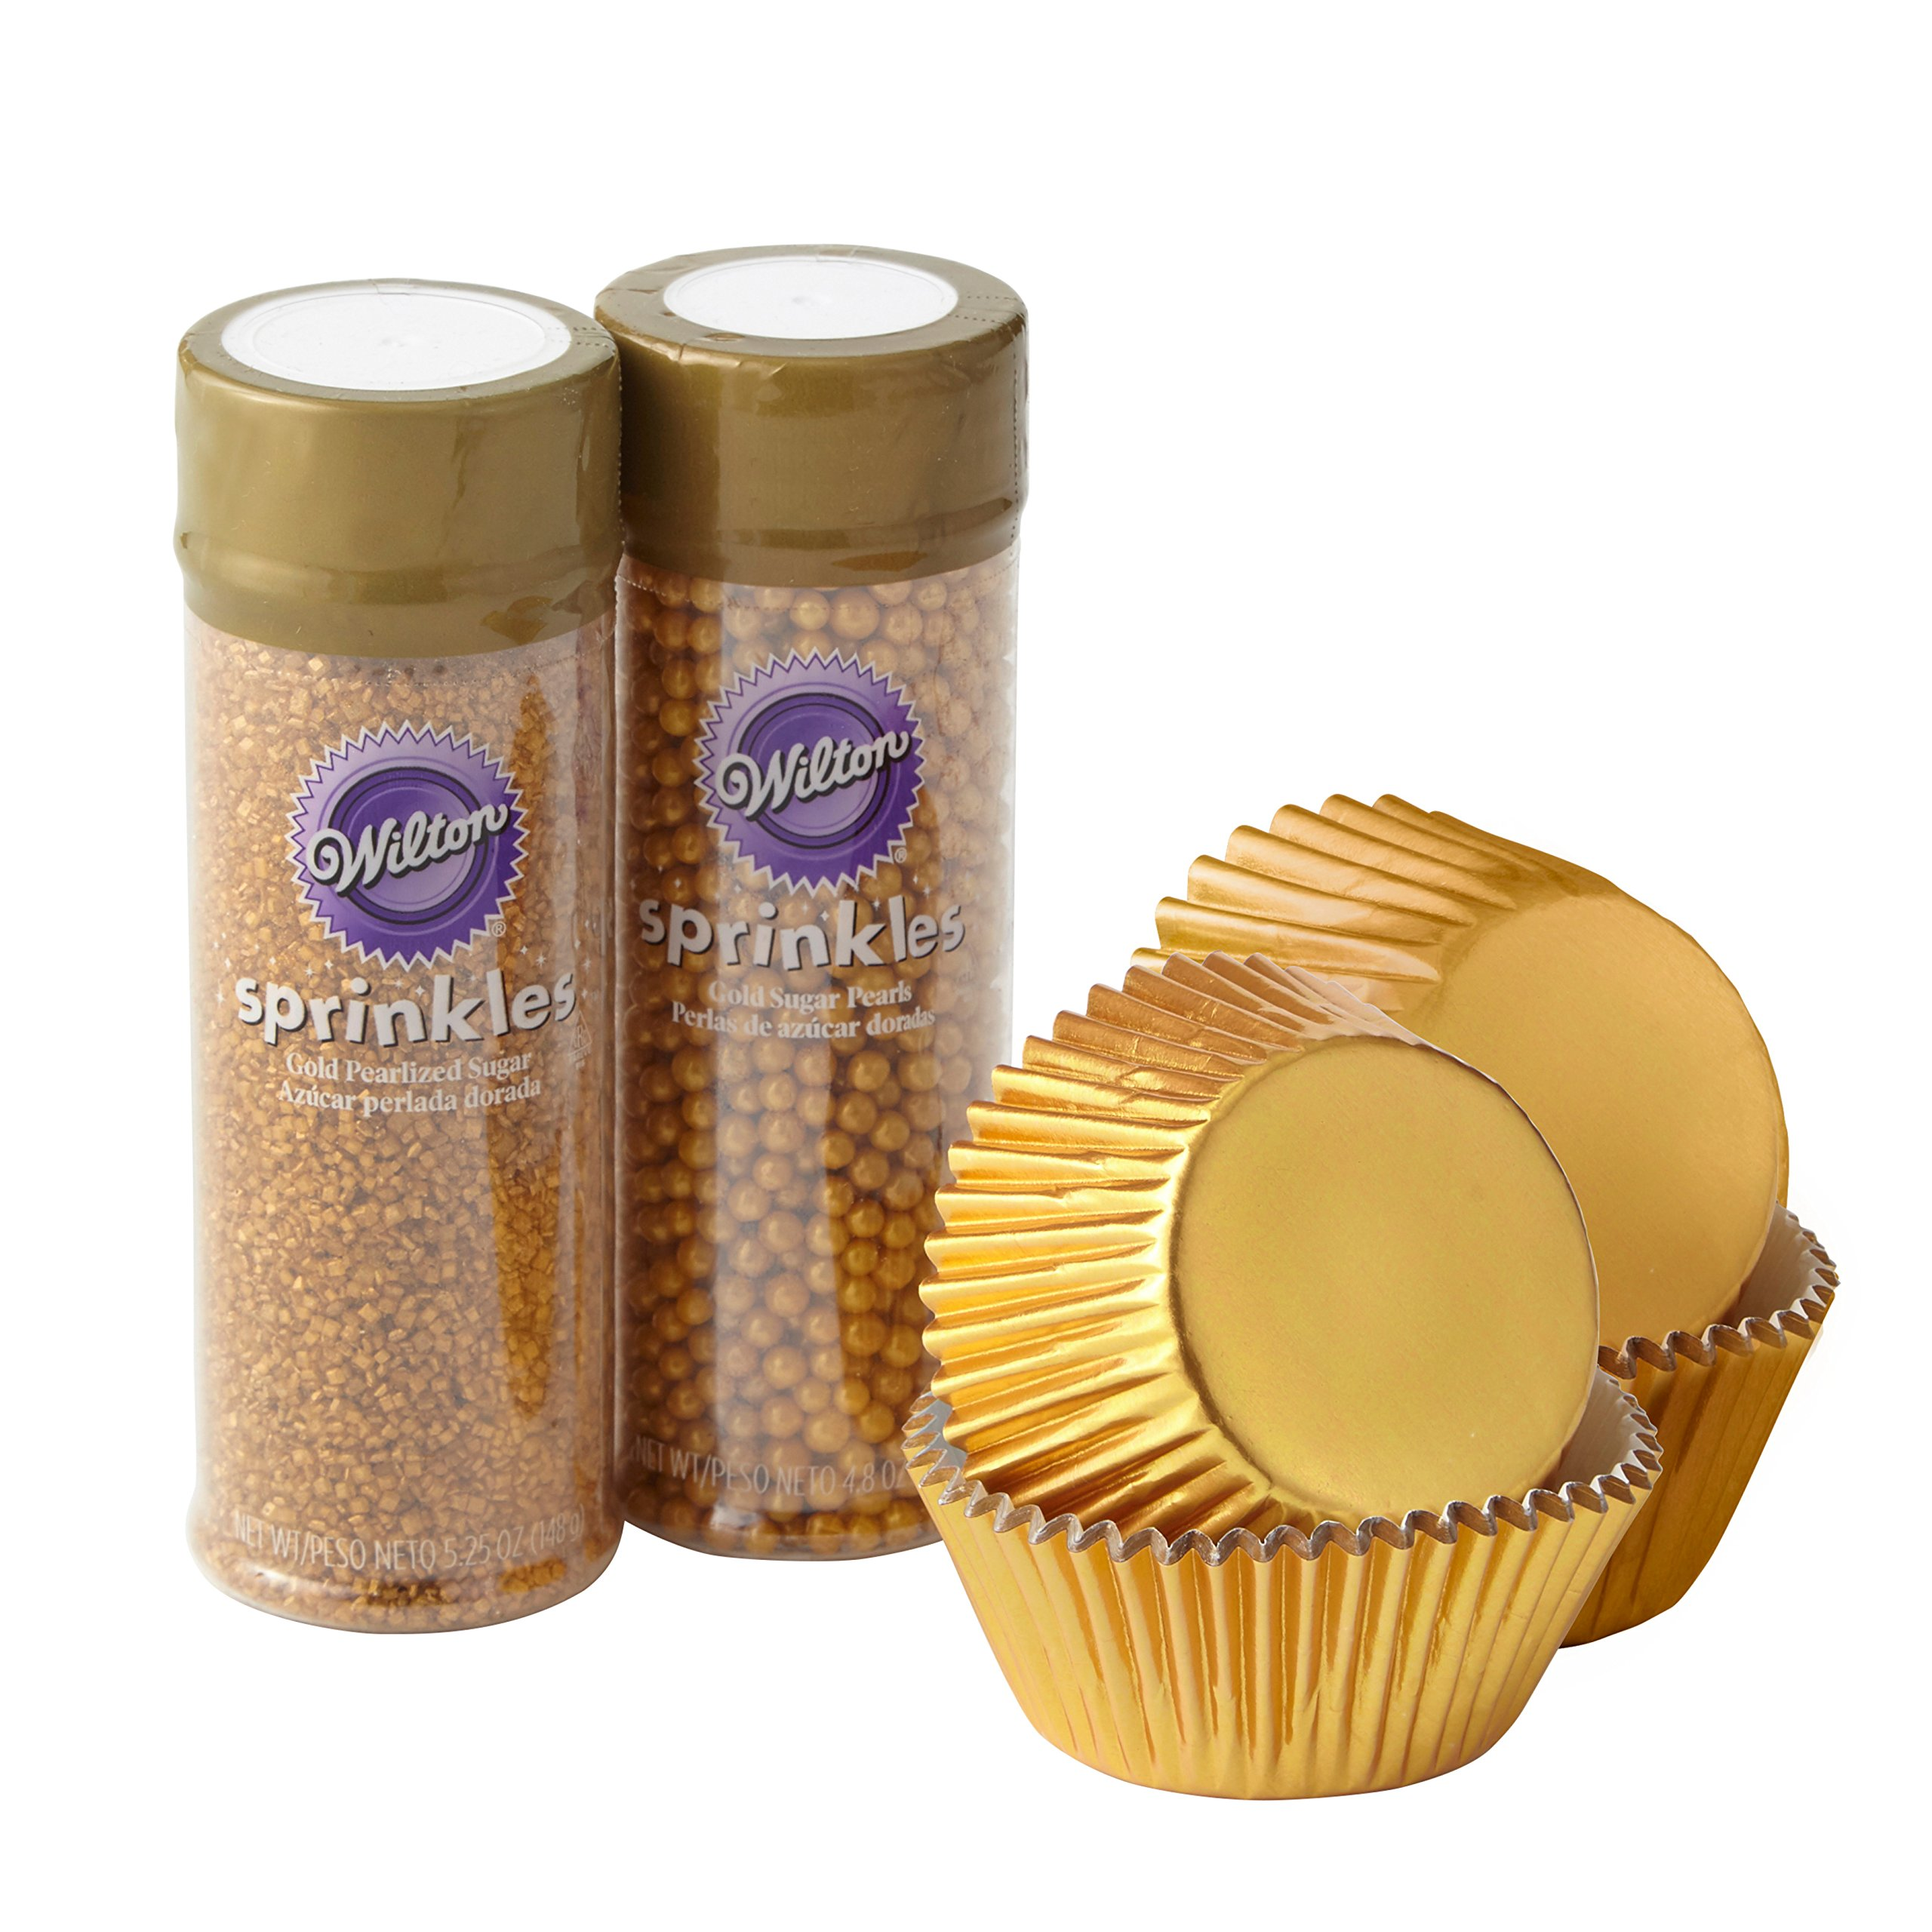 Wilton Gold Cupcake Decorating Kit, 4-Piece - Gold Baking Cups and Sprinkles by Wilton